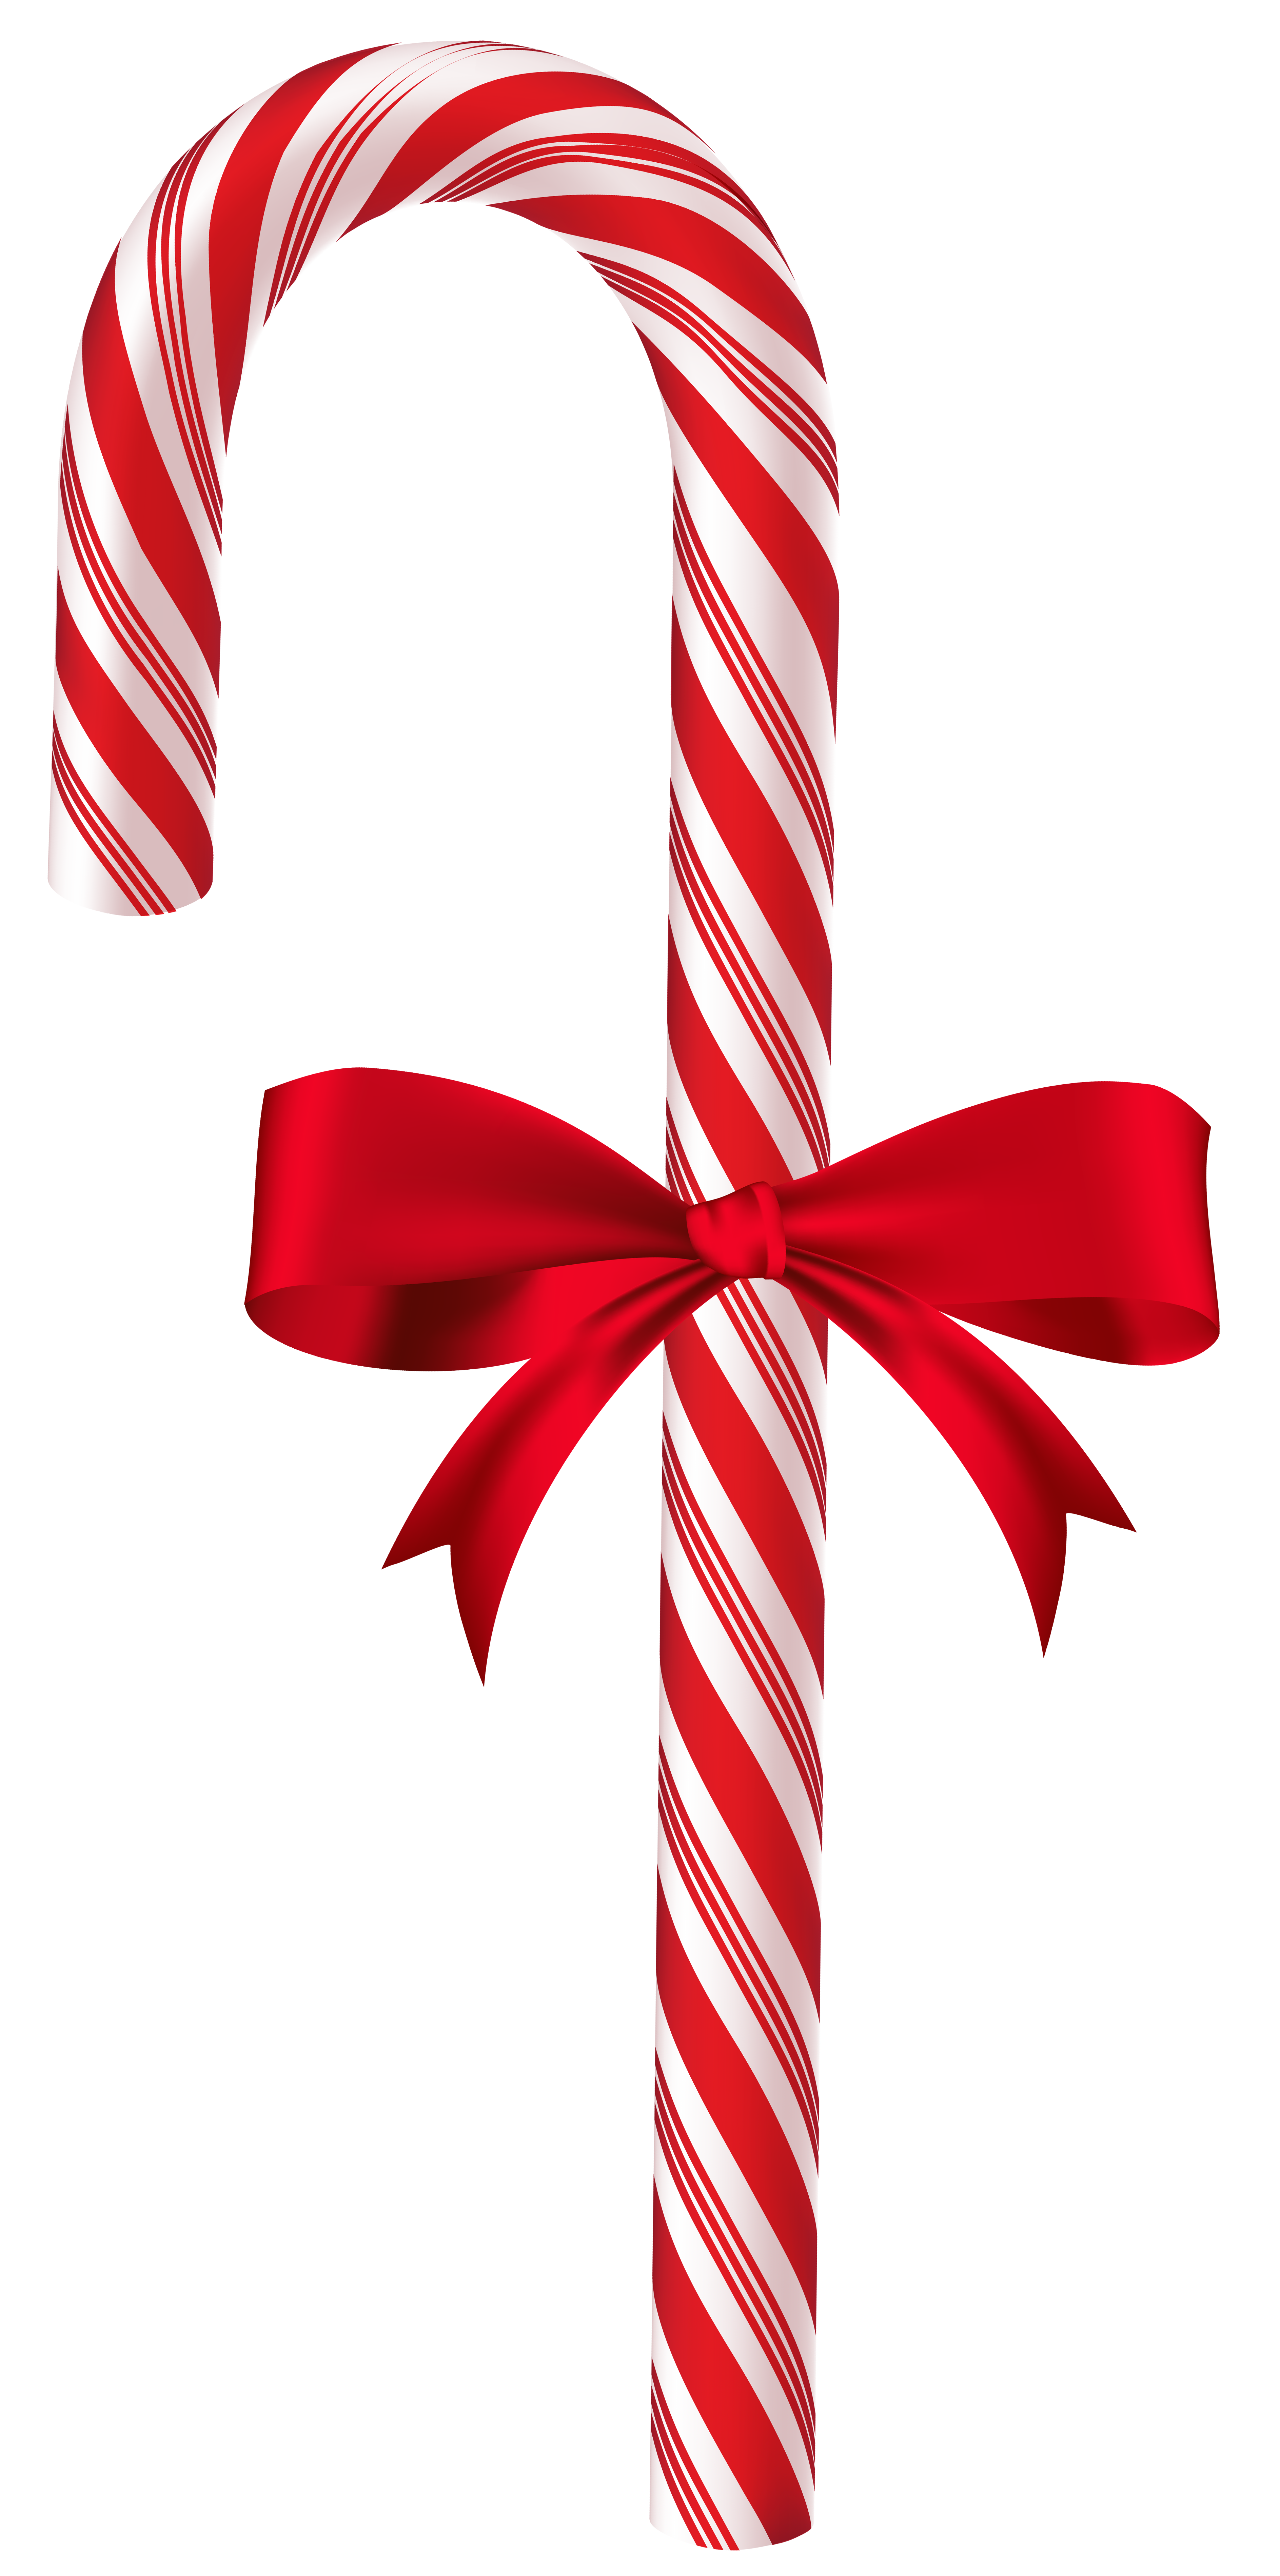 Candy Cane with Red Bow PNG Clip Art Image.